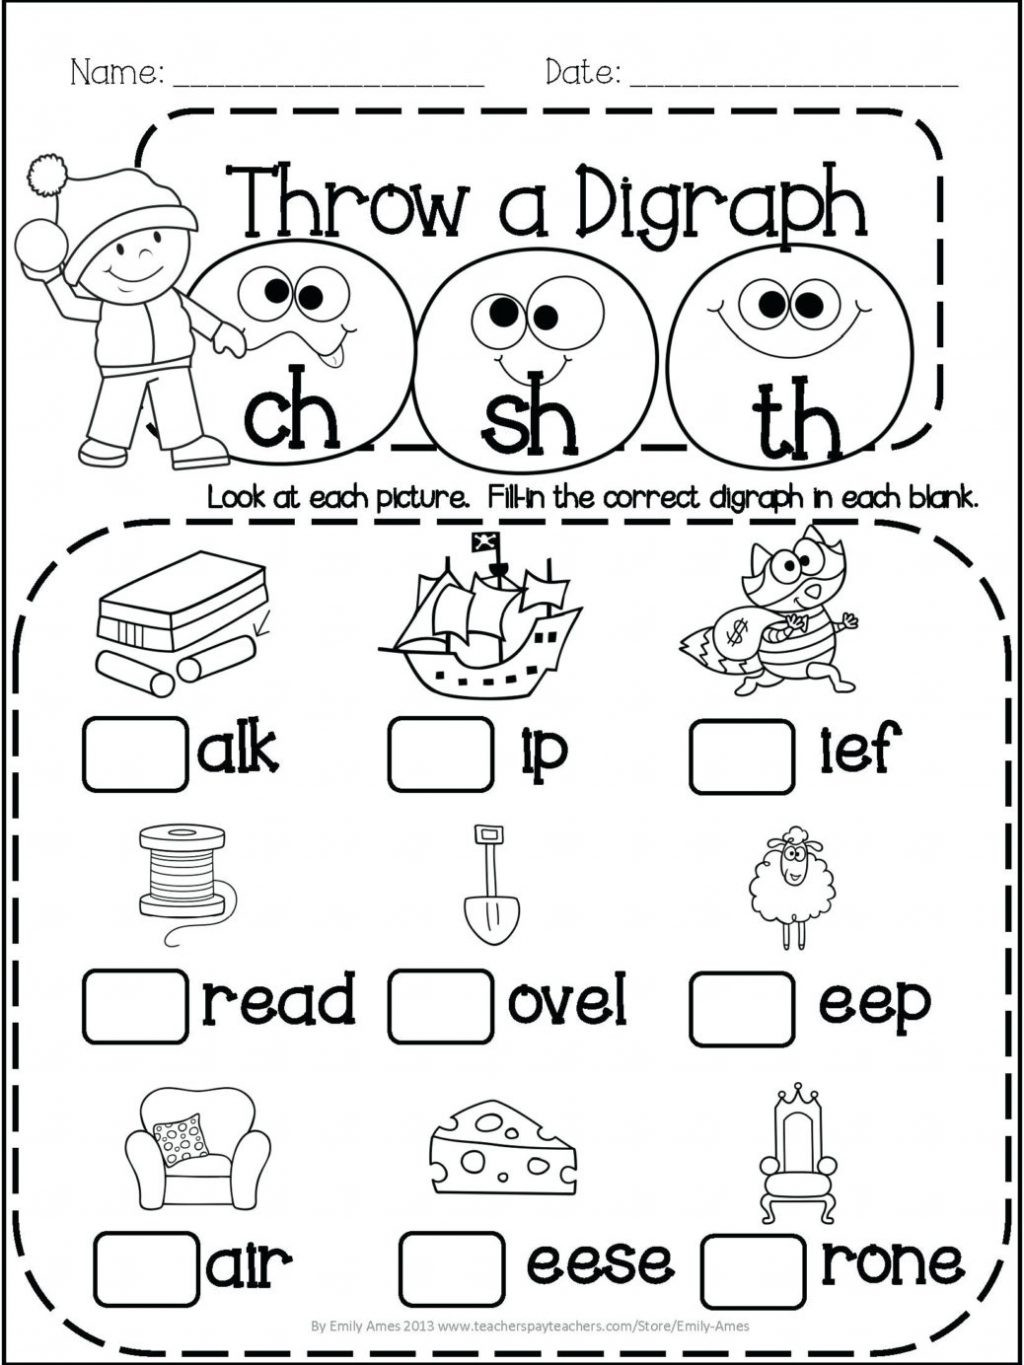 1st Grade Phonics Worksheets Worksheet Free First Grade Phonics Worksheets Scope and